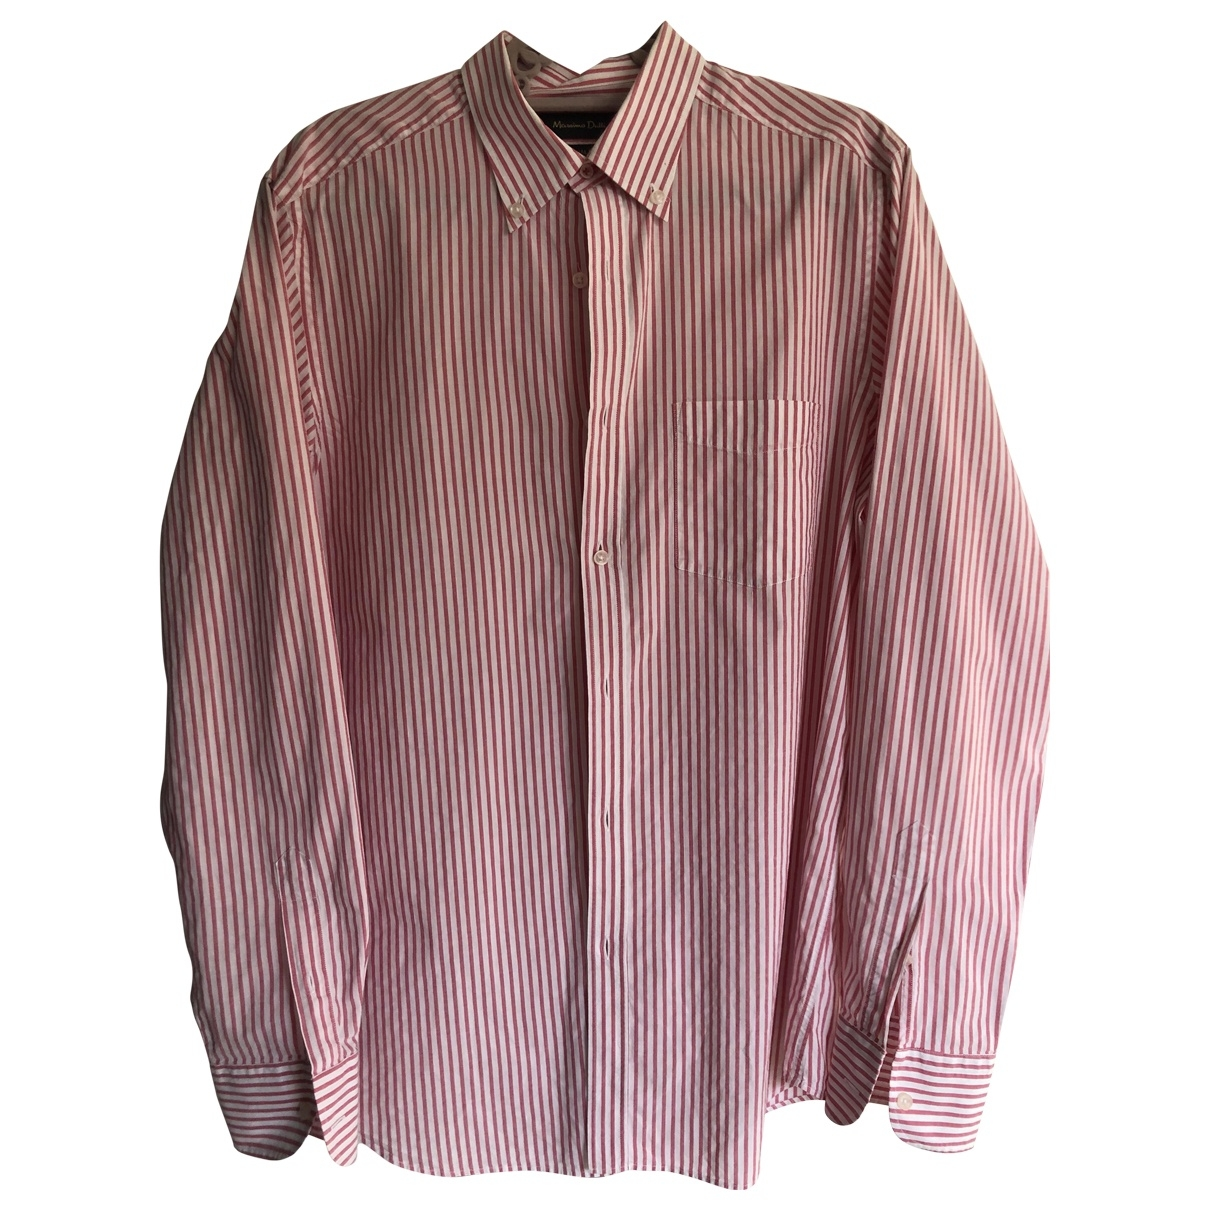 Massimo Dutti \N Pink  top for Women 38 FR